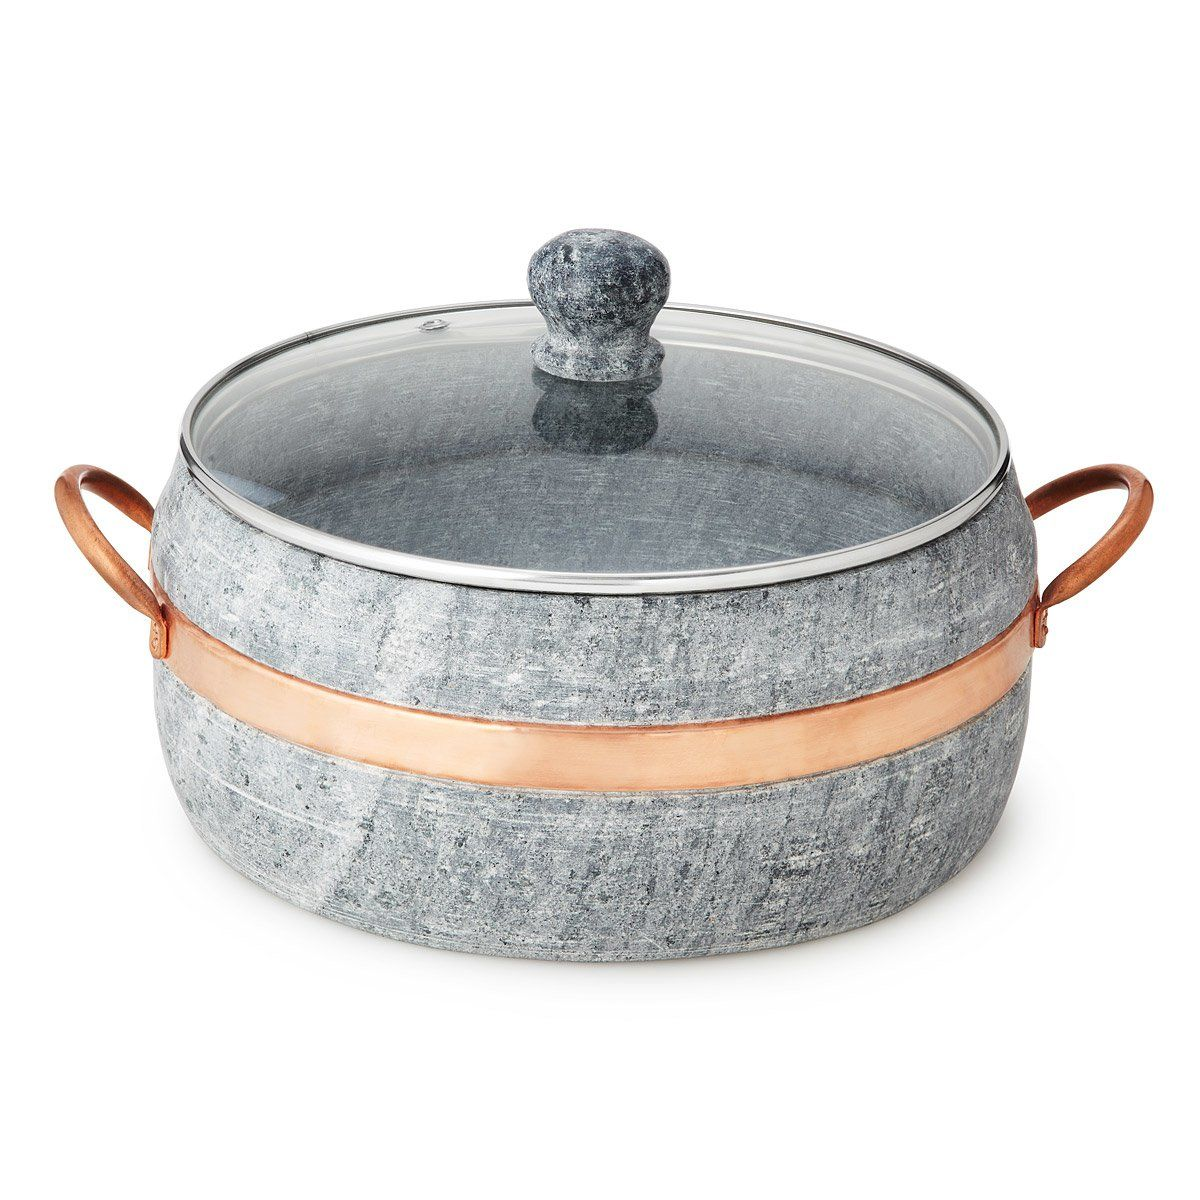 Make This Rustic Natural Soapstone Pot Your Number One Comfort Food Companion